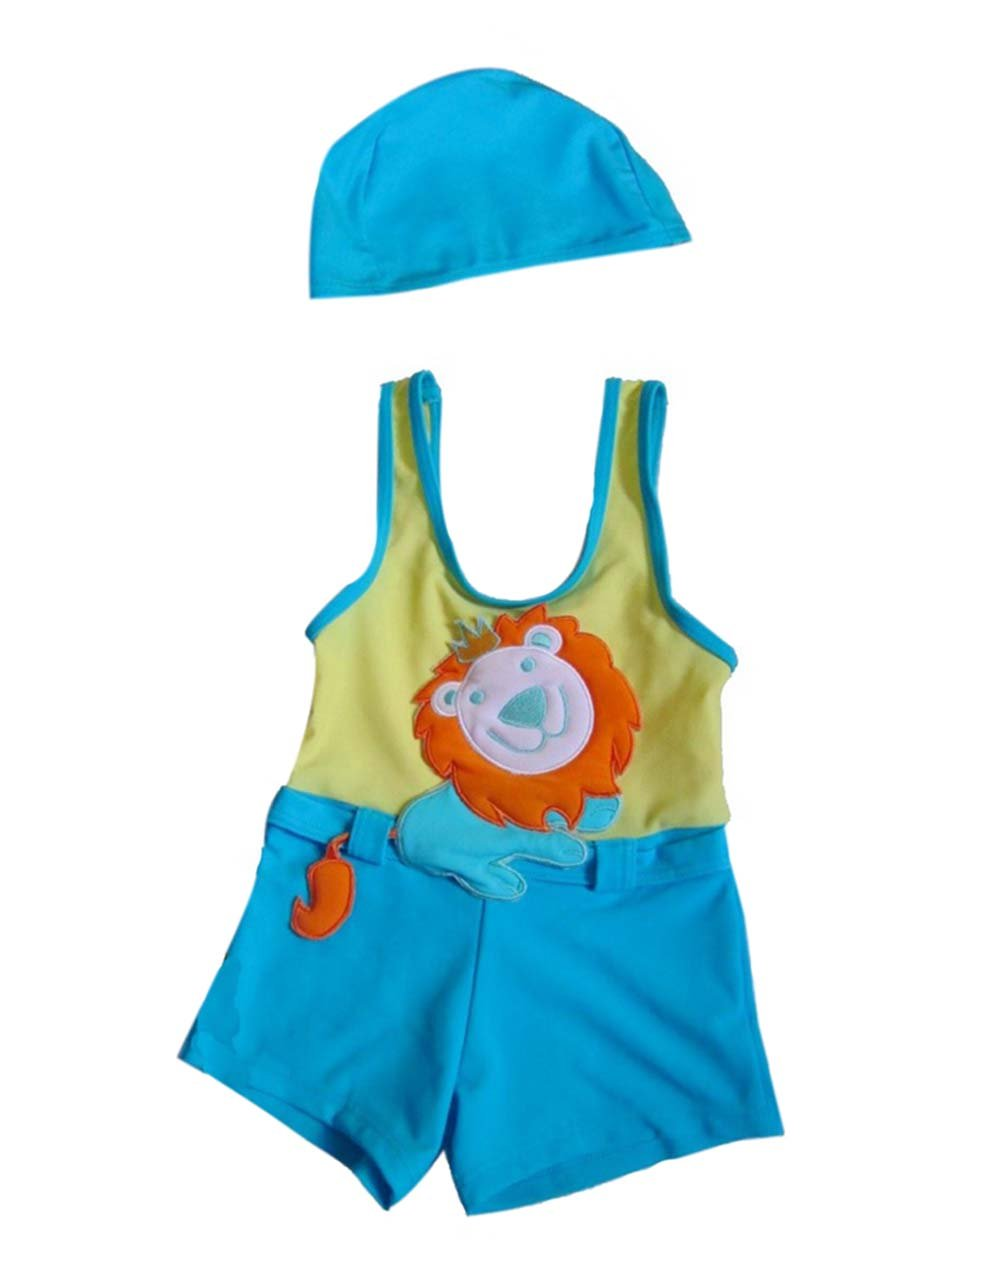 Panda Superstore Cute Lion Boys Body Suits 2 Pcs Swimsuits, 3T, 1-2 Years Old Boy